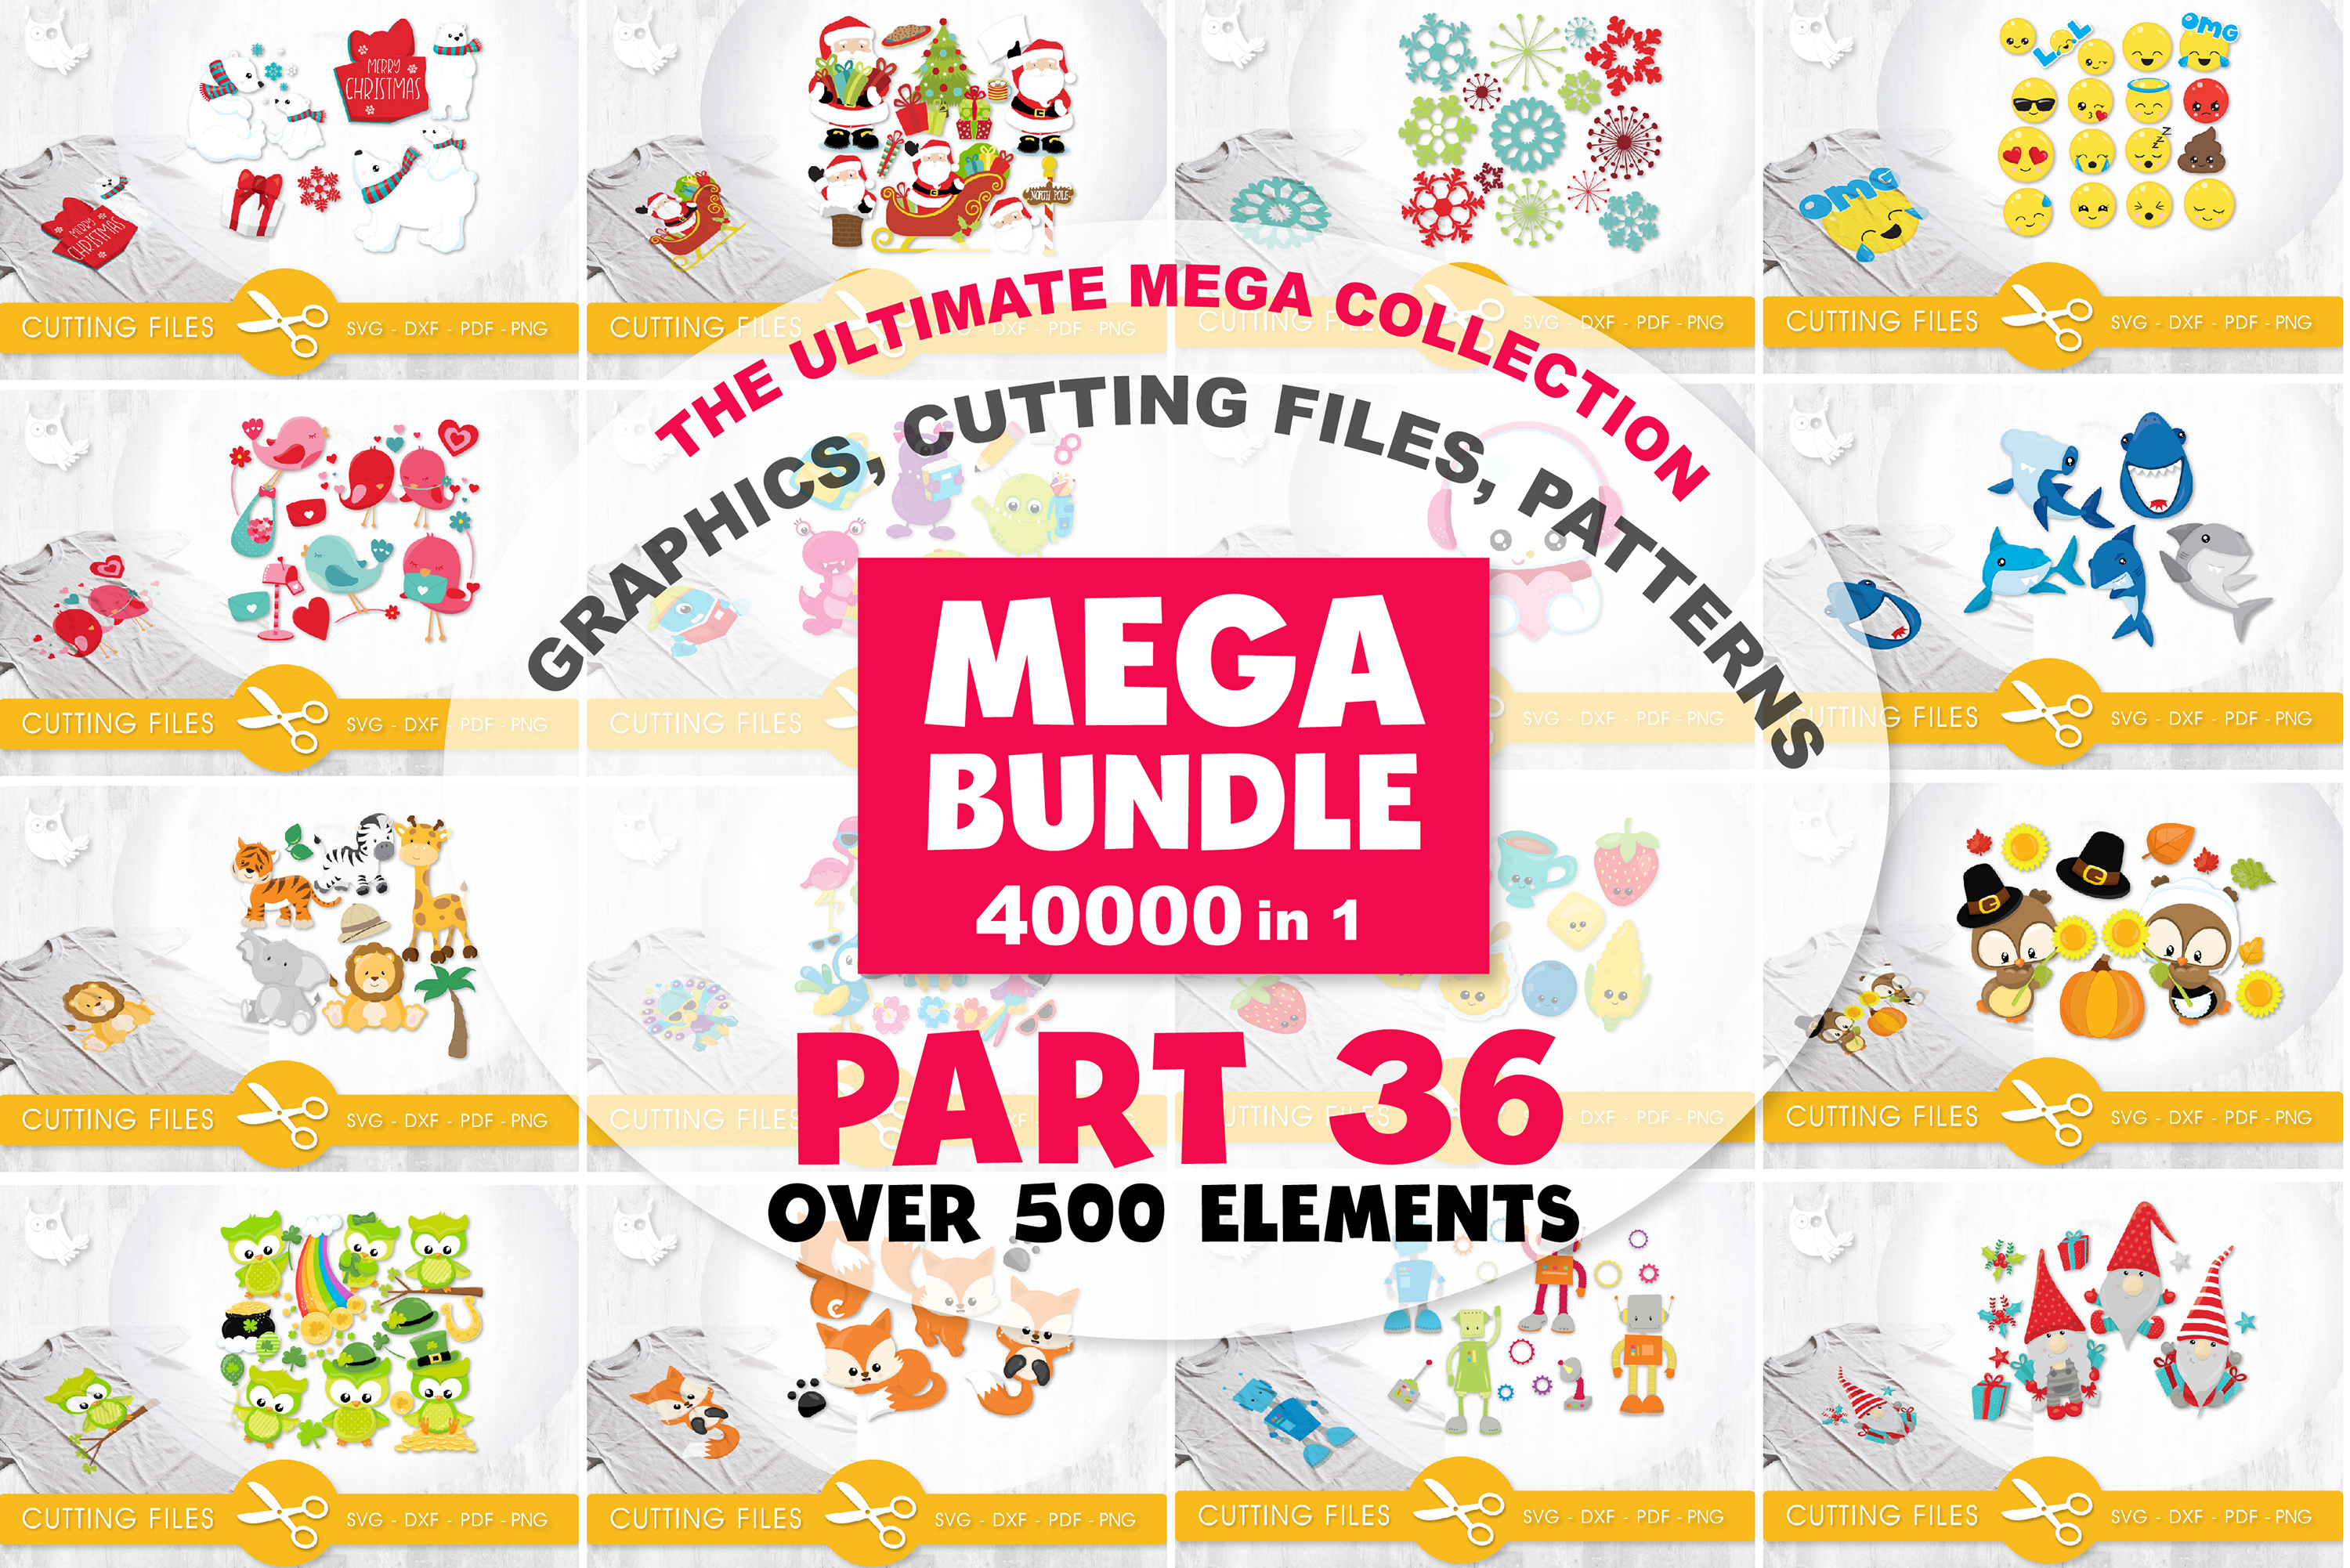 MEGA BUNDLE PART36 - 40000 in 1 Full Collection example image 1